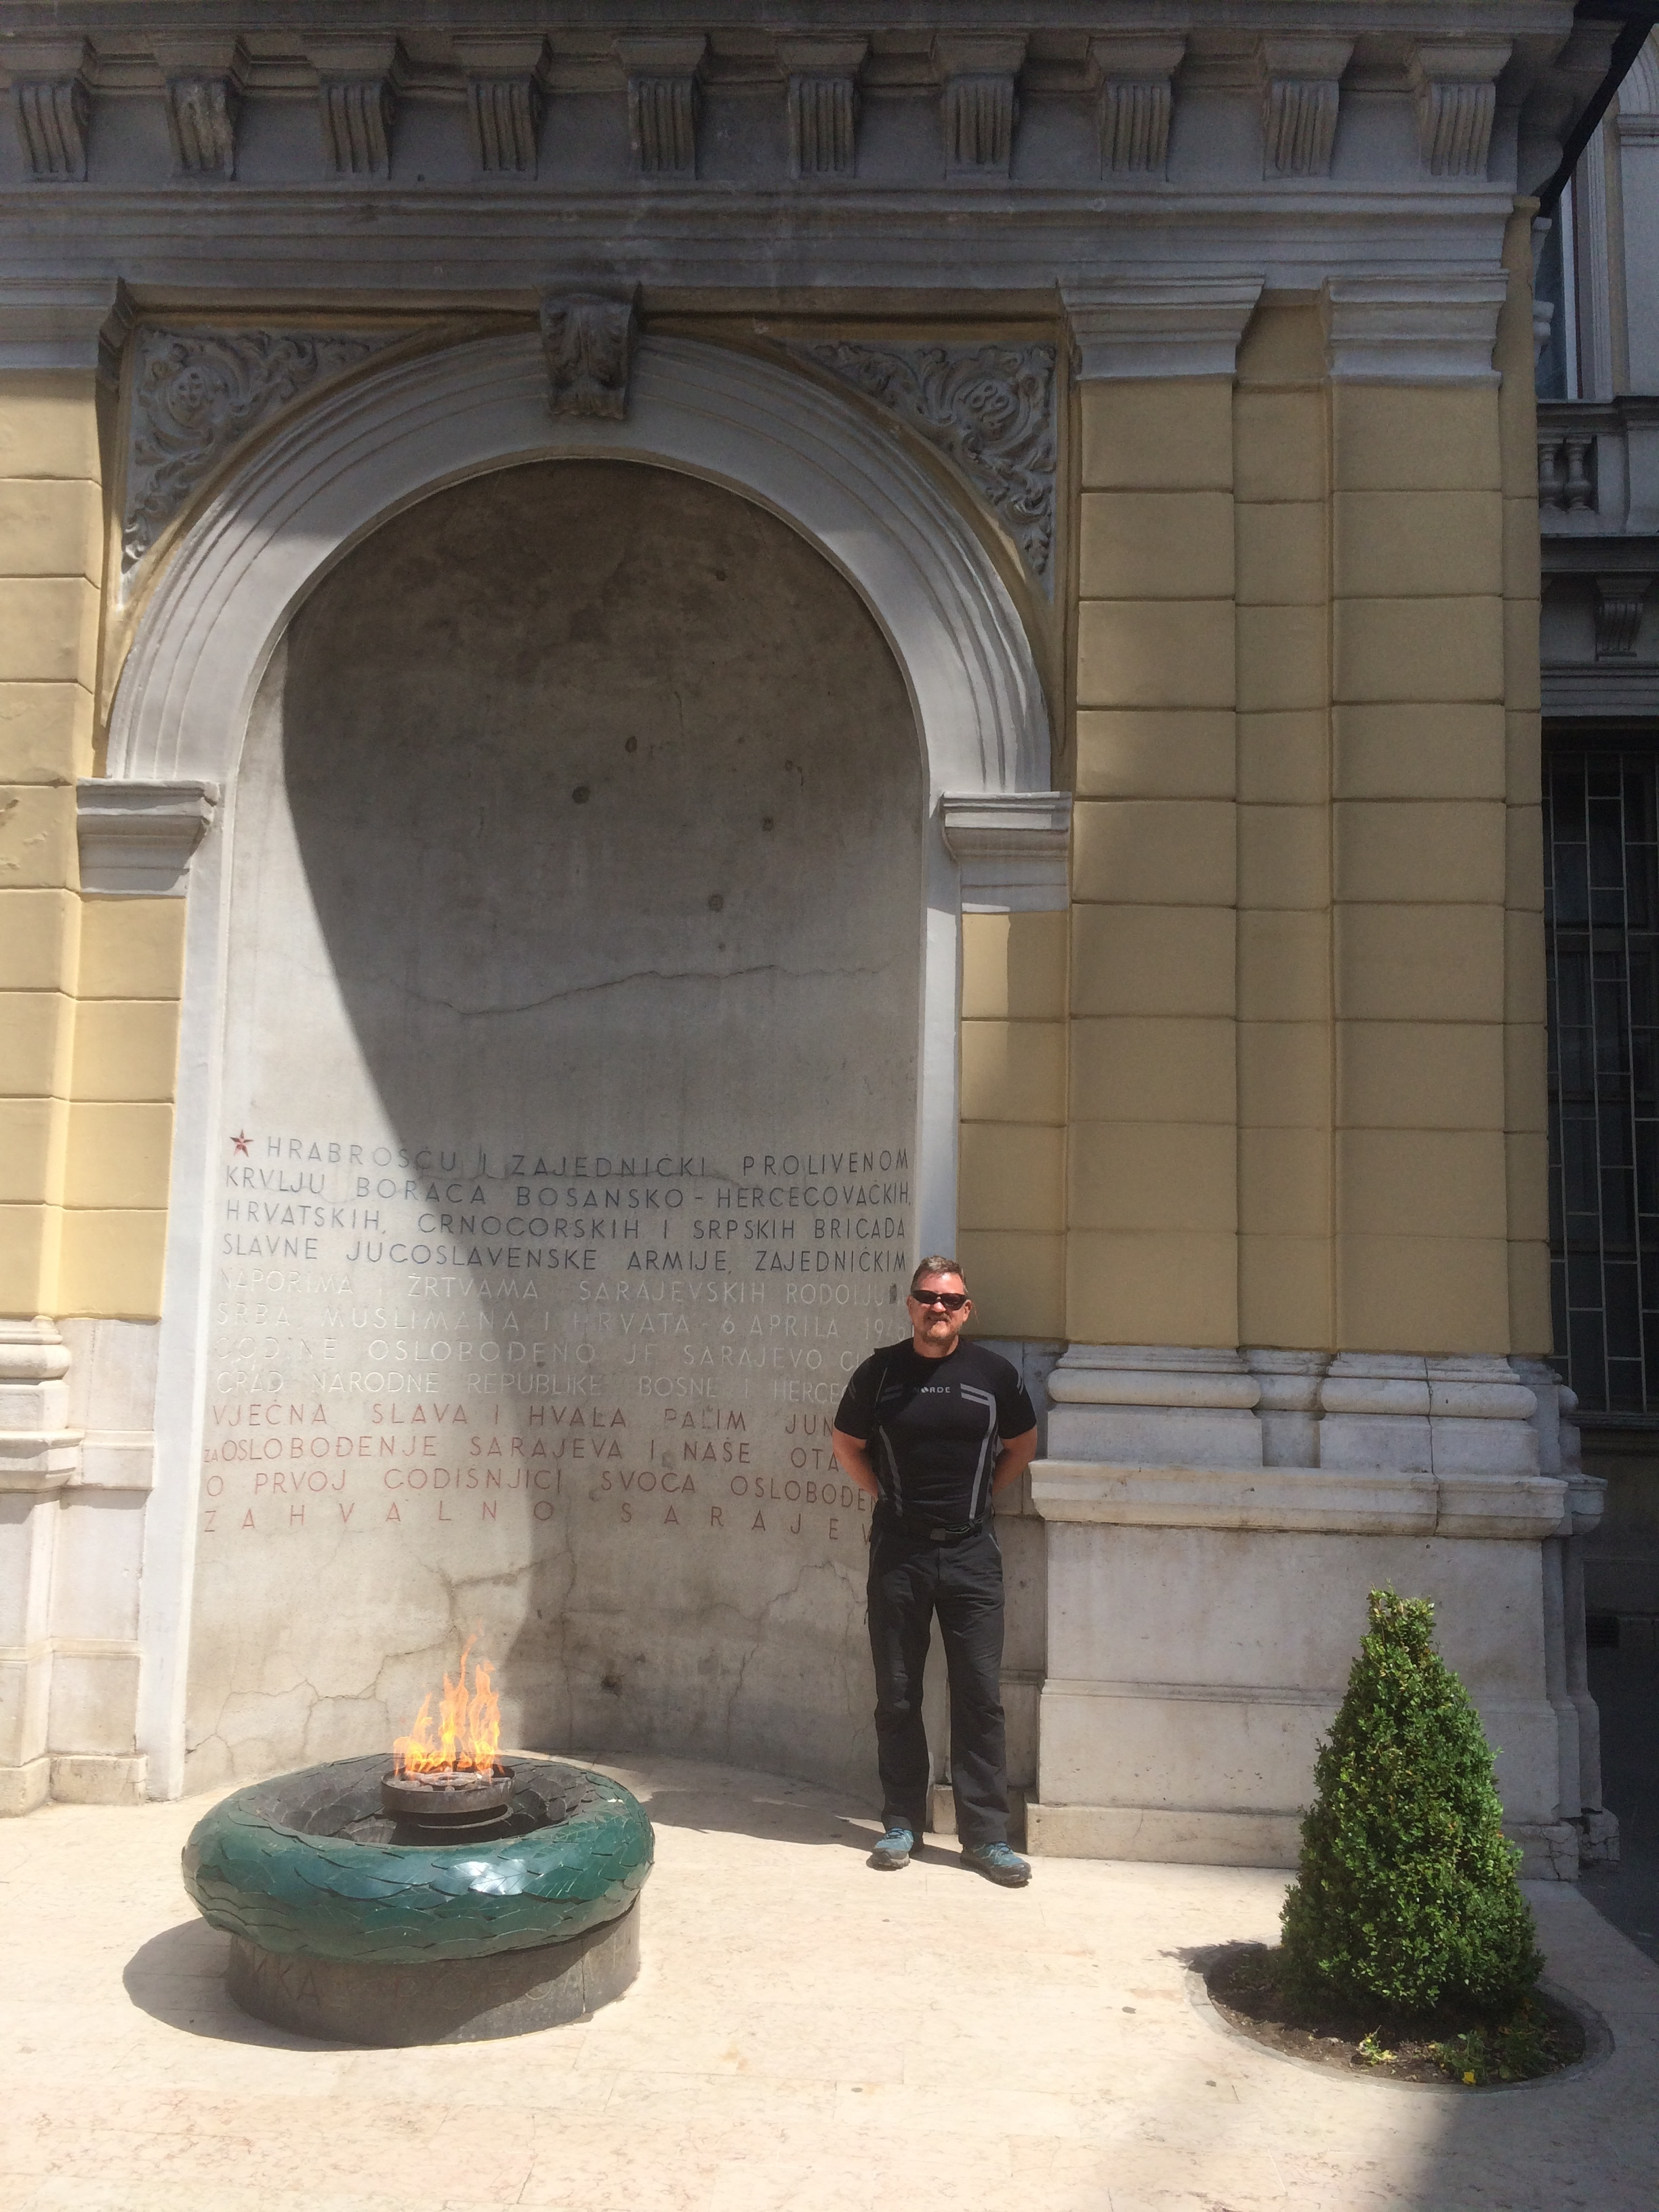 The Eternal Flame In Sarajevo, To Remember All Victims Of WW2